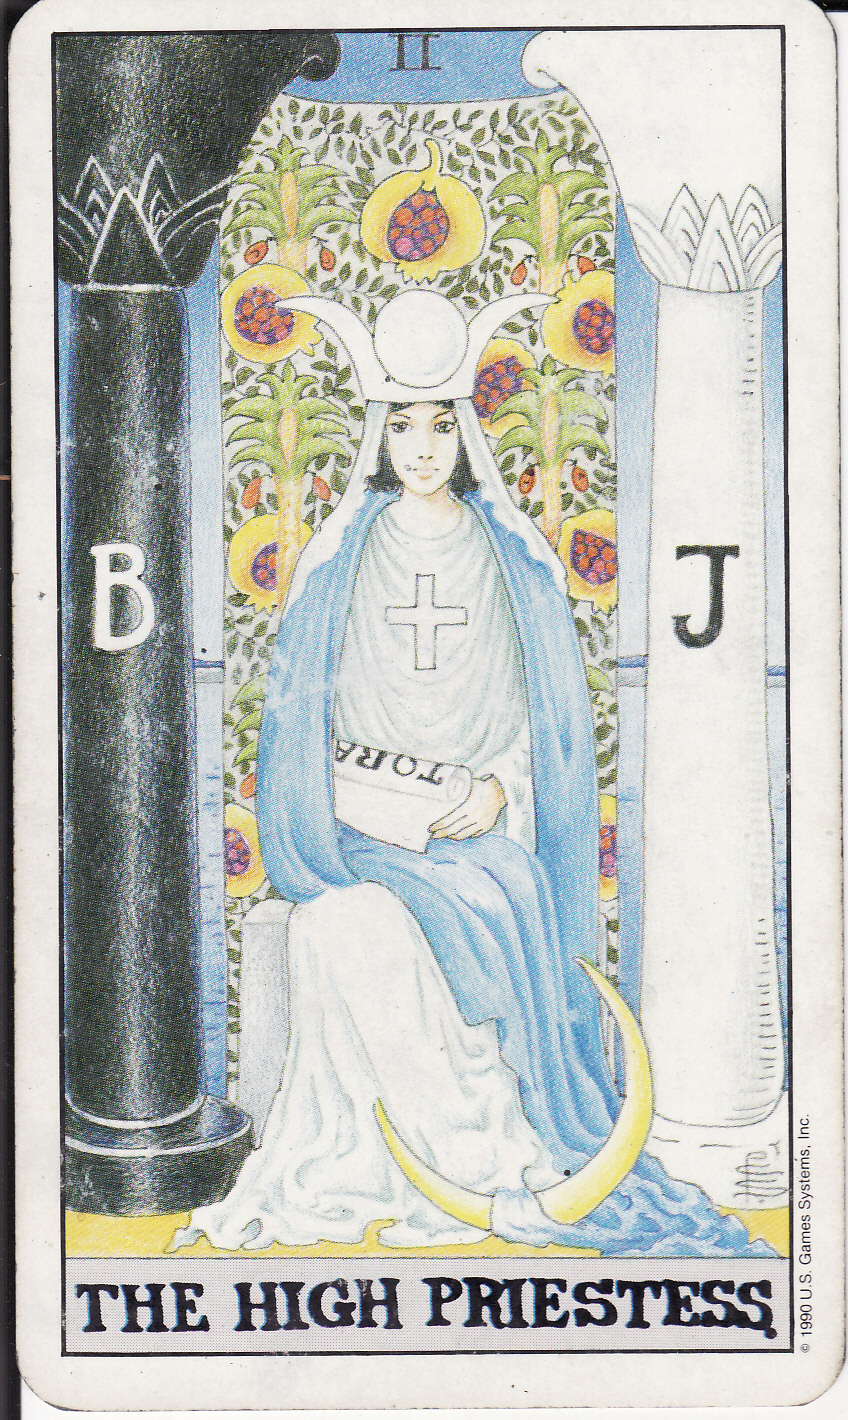 High Priestess Full Colorful Deck Major Stock Illustration: The Royal Road: 2 THE HIGH PRIESTESS II